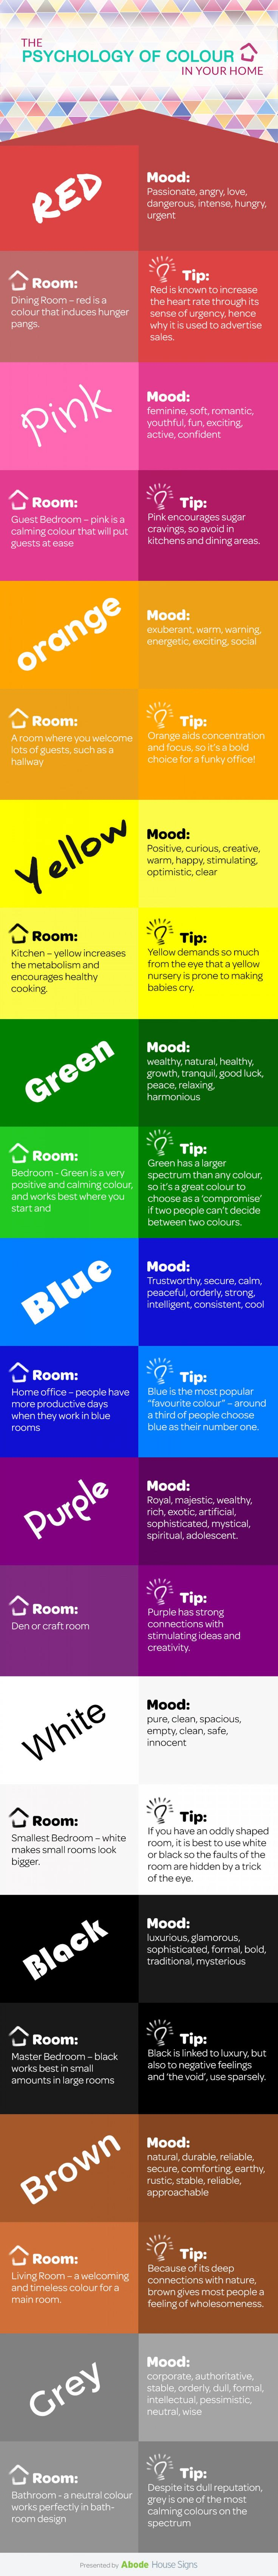 The Psychology of Colour #infographic